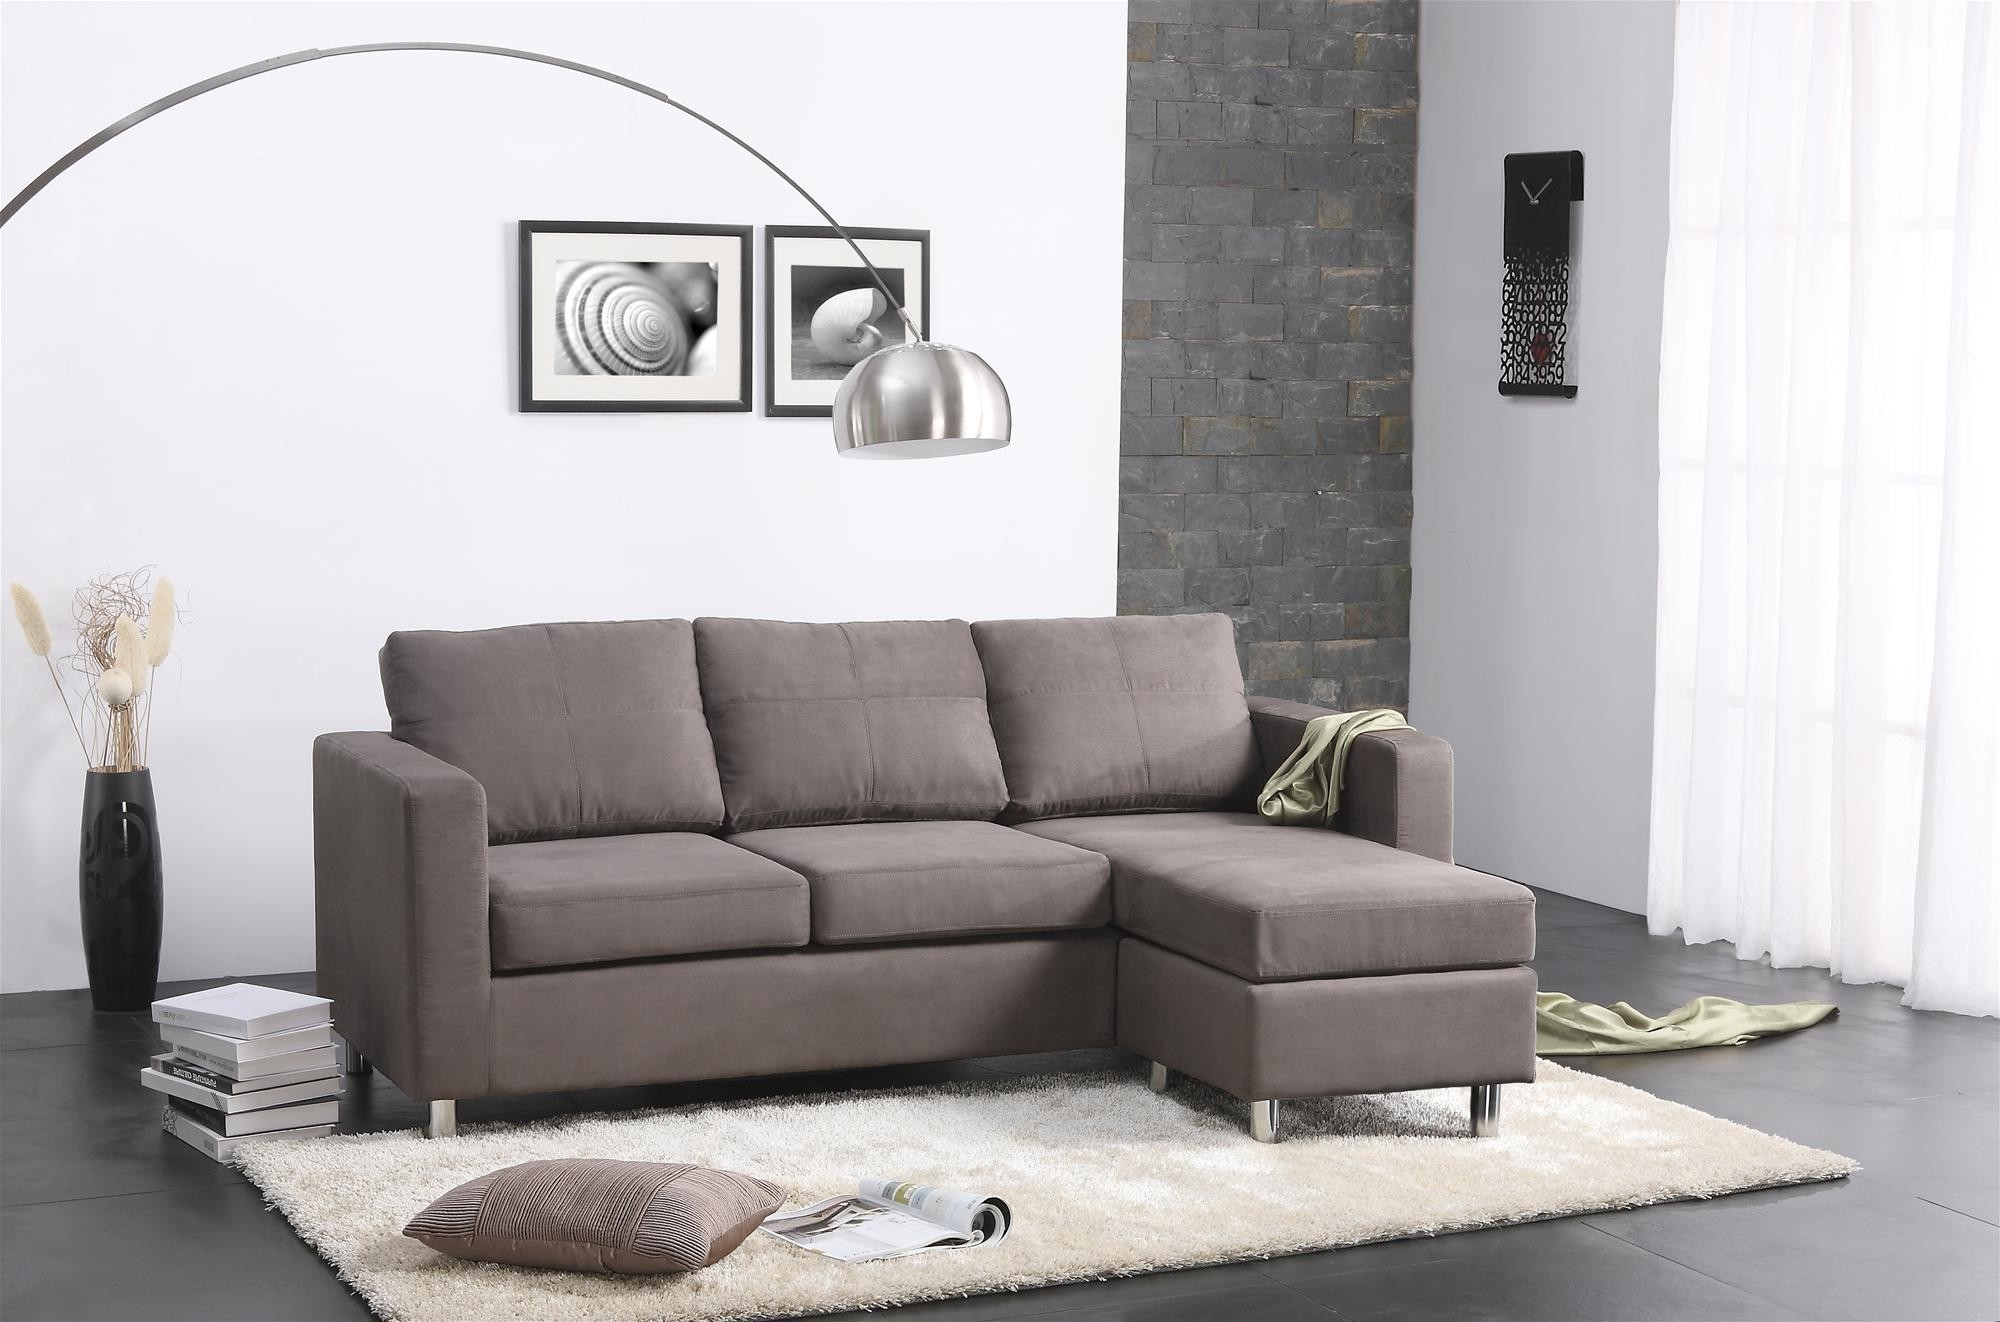 Excellent Find Small Sectional Sofas For Small Spaces 52 In Condo Intended For Condo Sectional Sofas (#7 of 12)